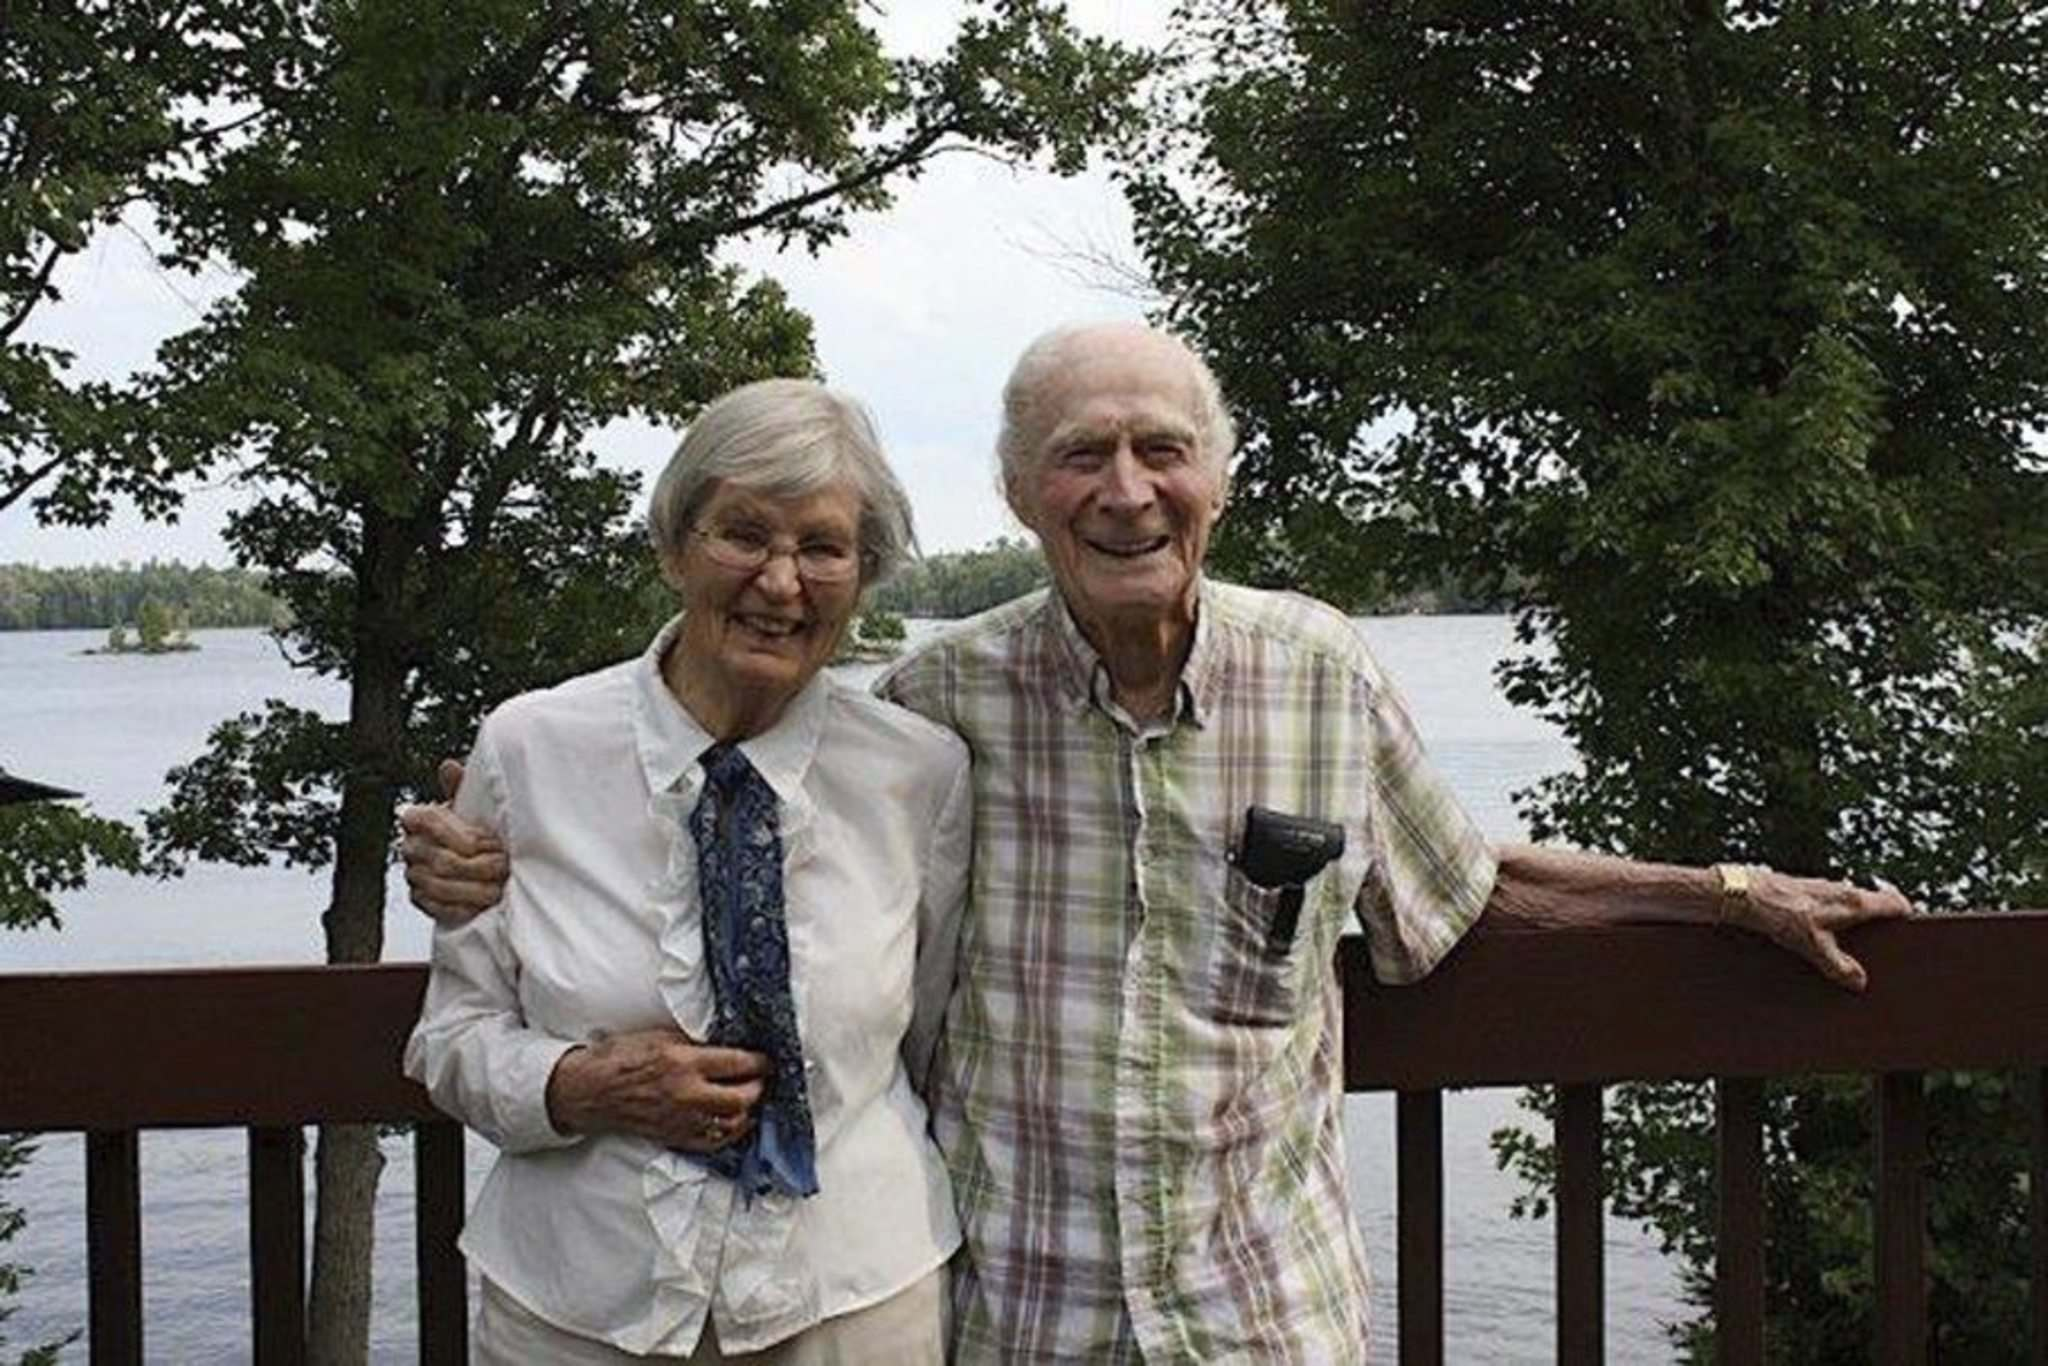 SUPPLIED</p><p>Ferguson and her late husband Bob Ferguson with whom she shared a love of nature and people. Bob died in 2015.</p></p>